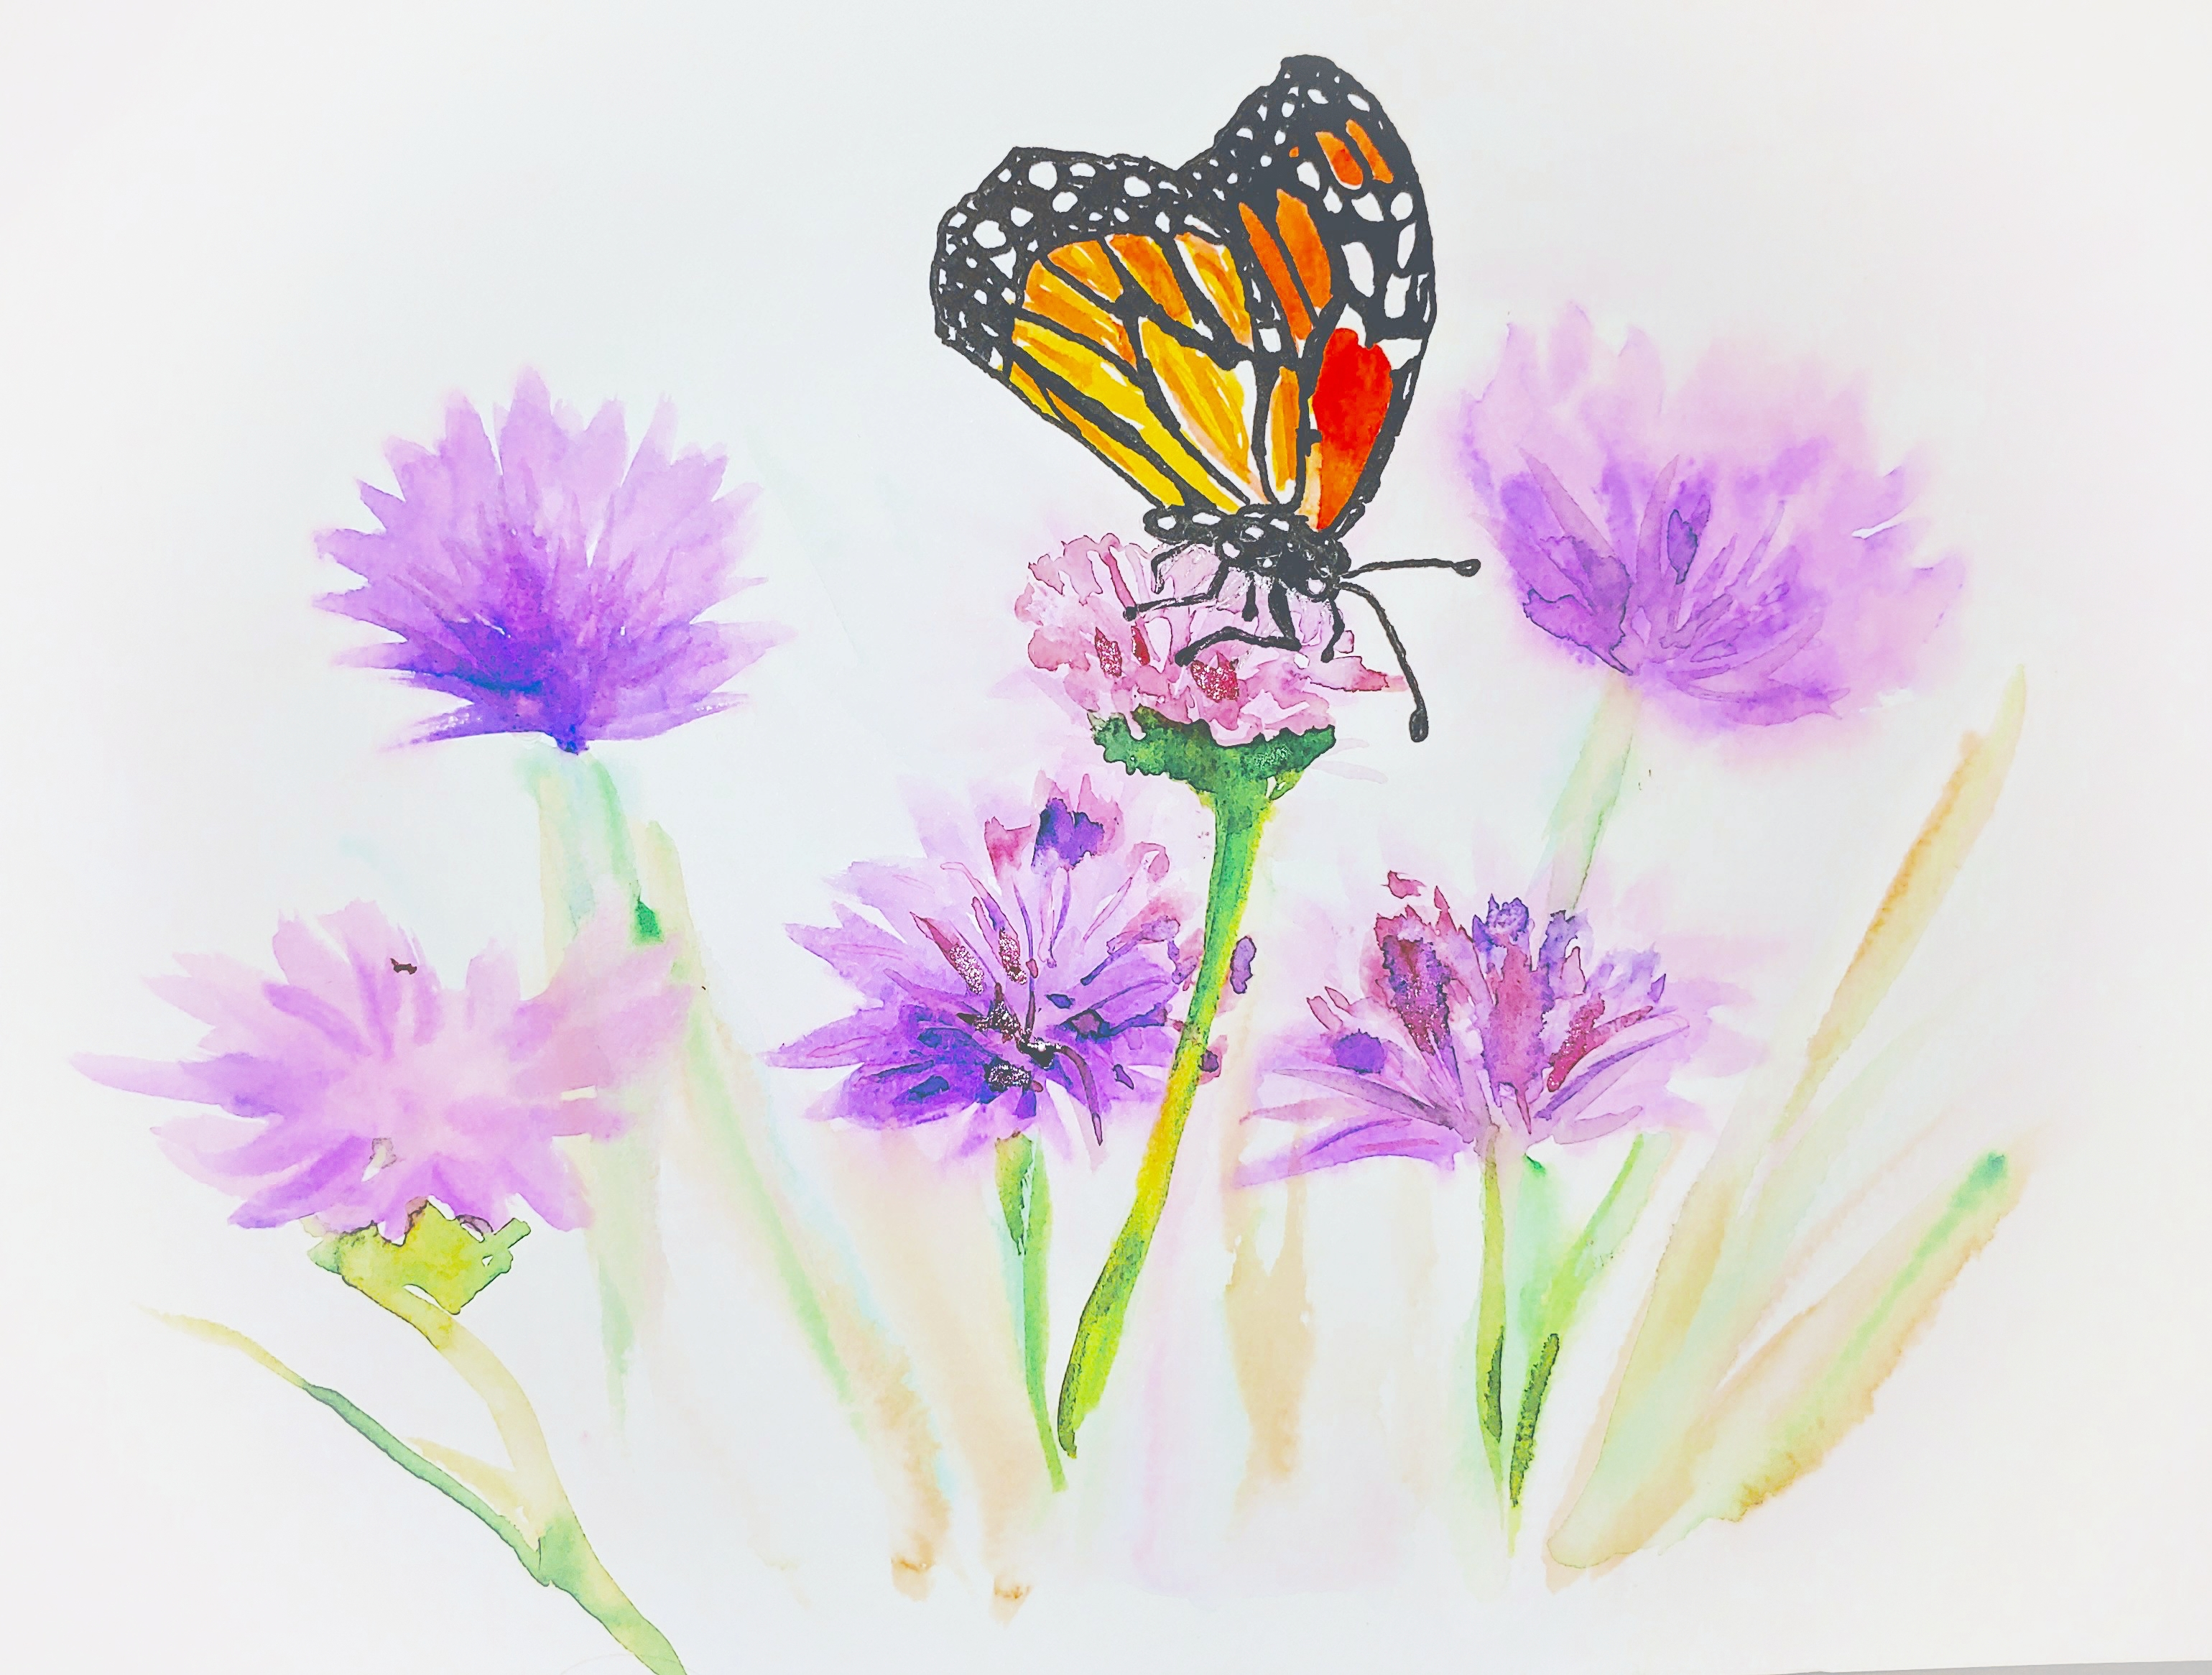 Watercolor by Lucy J Monarch butterfly on a purple clover.